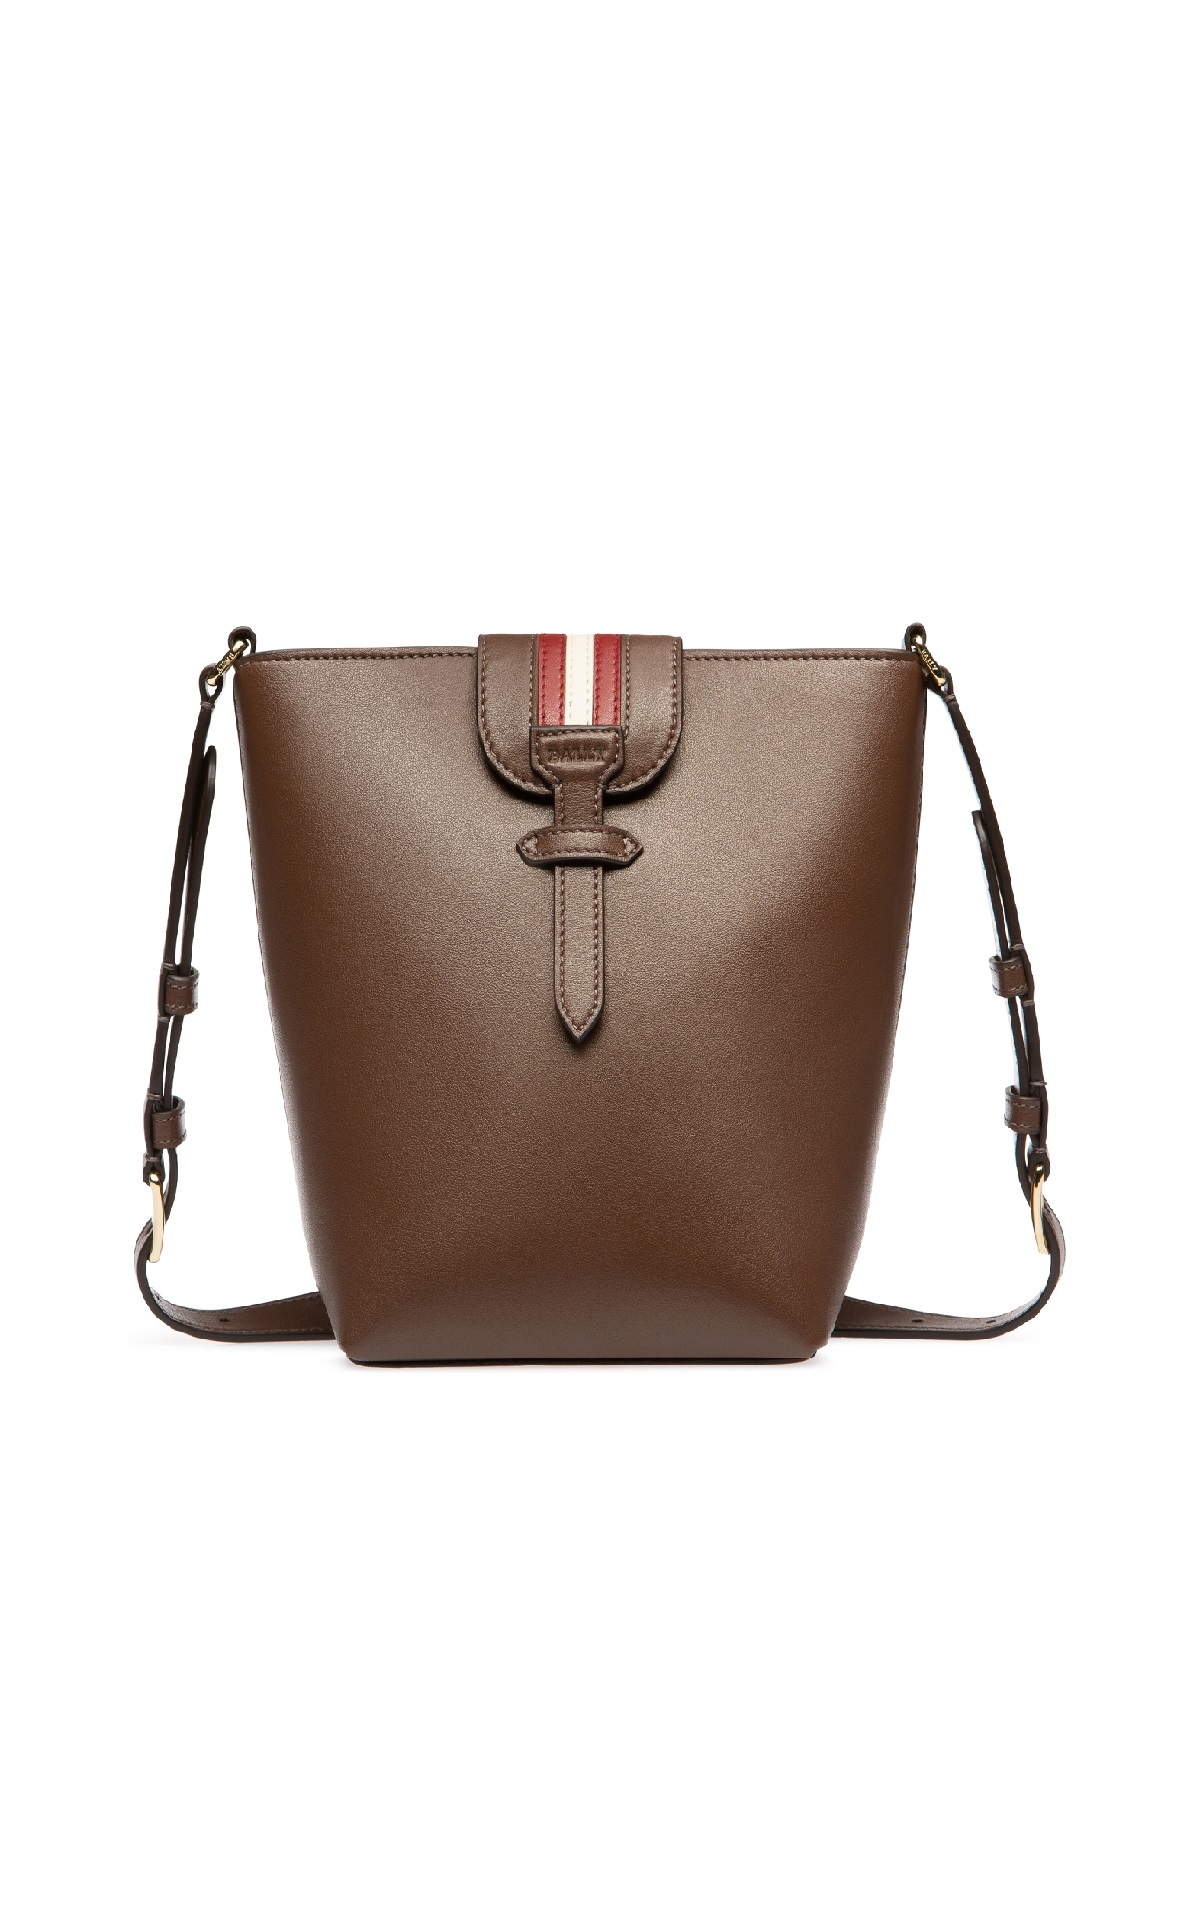 Brown leather bucket bag for woman Bally